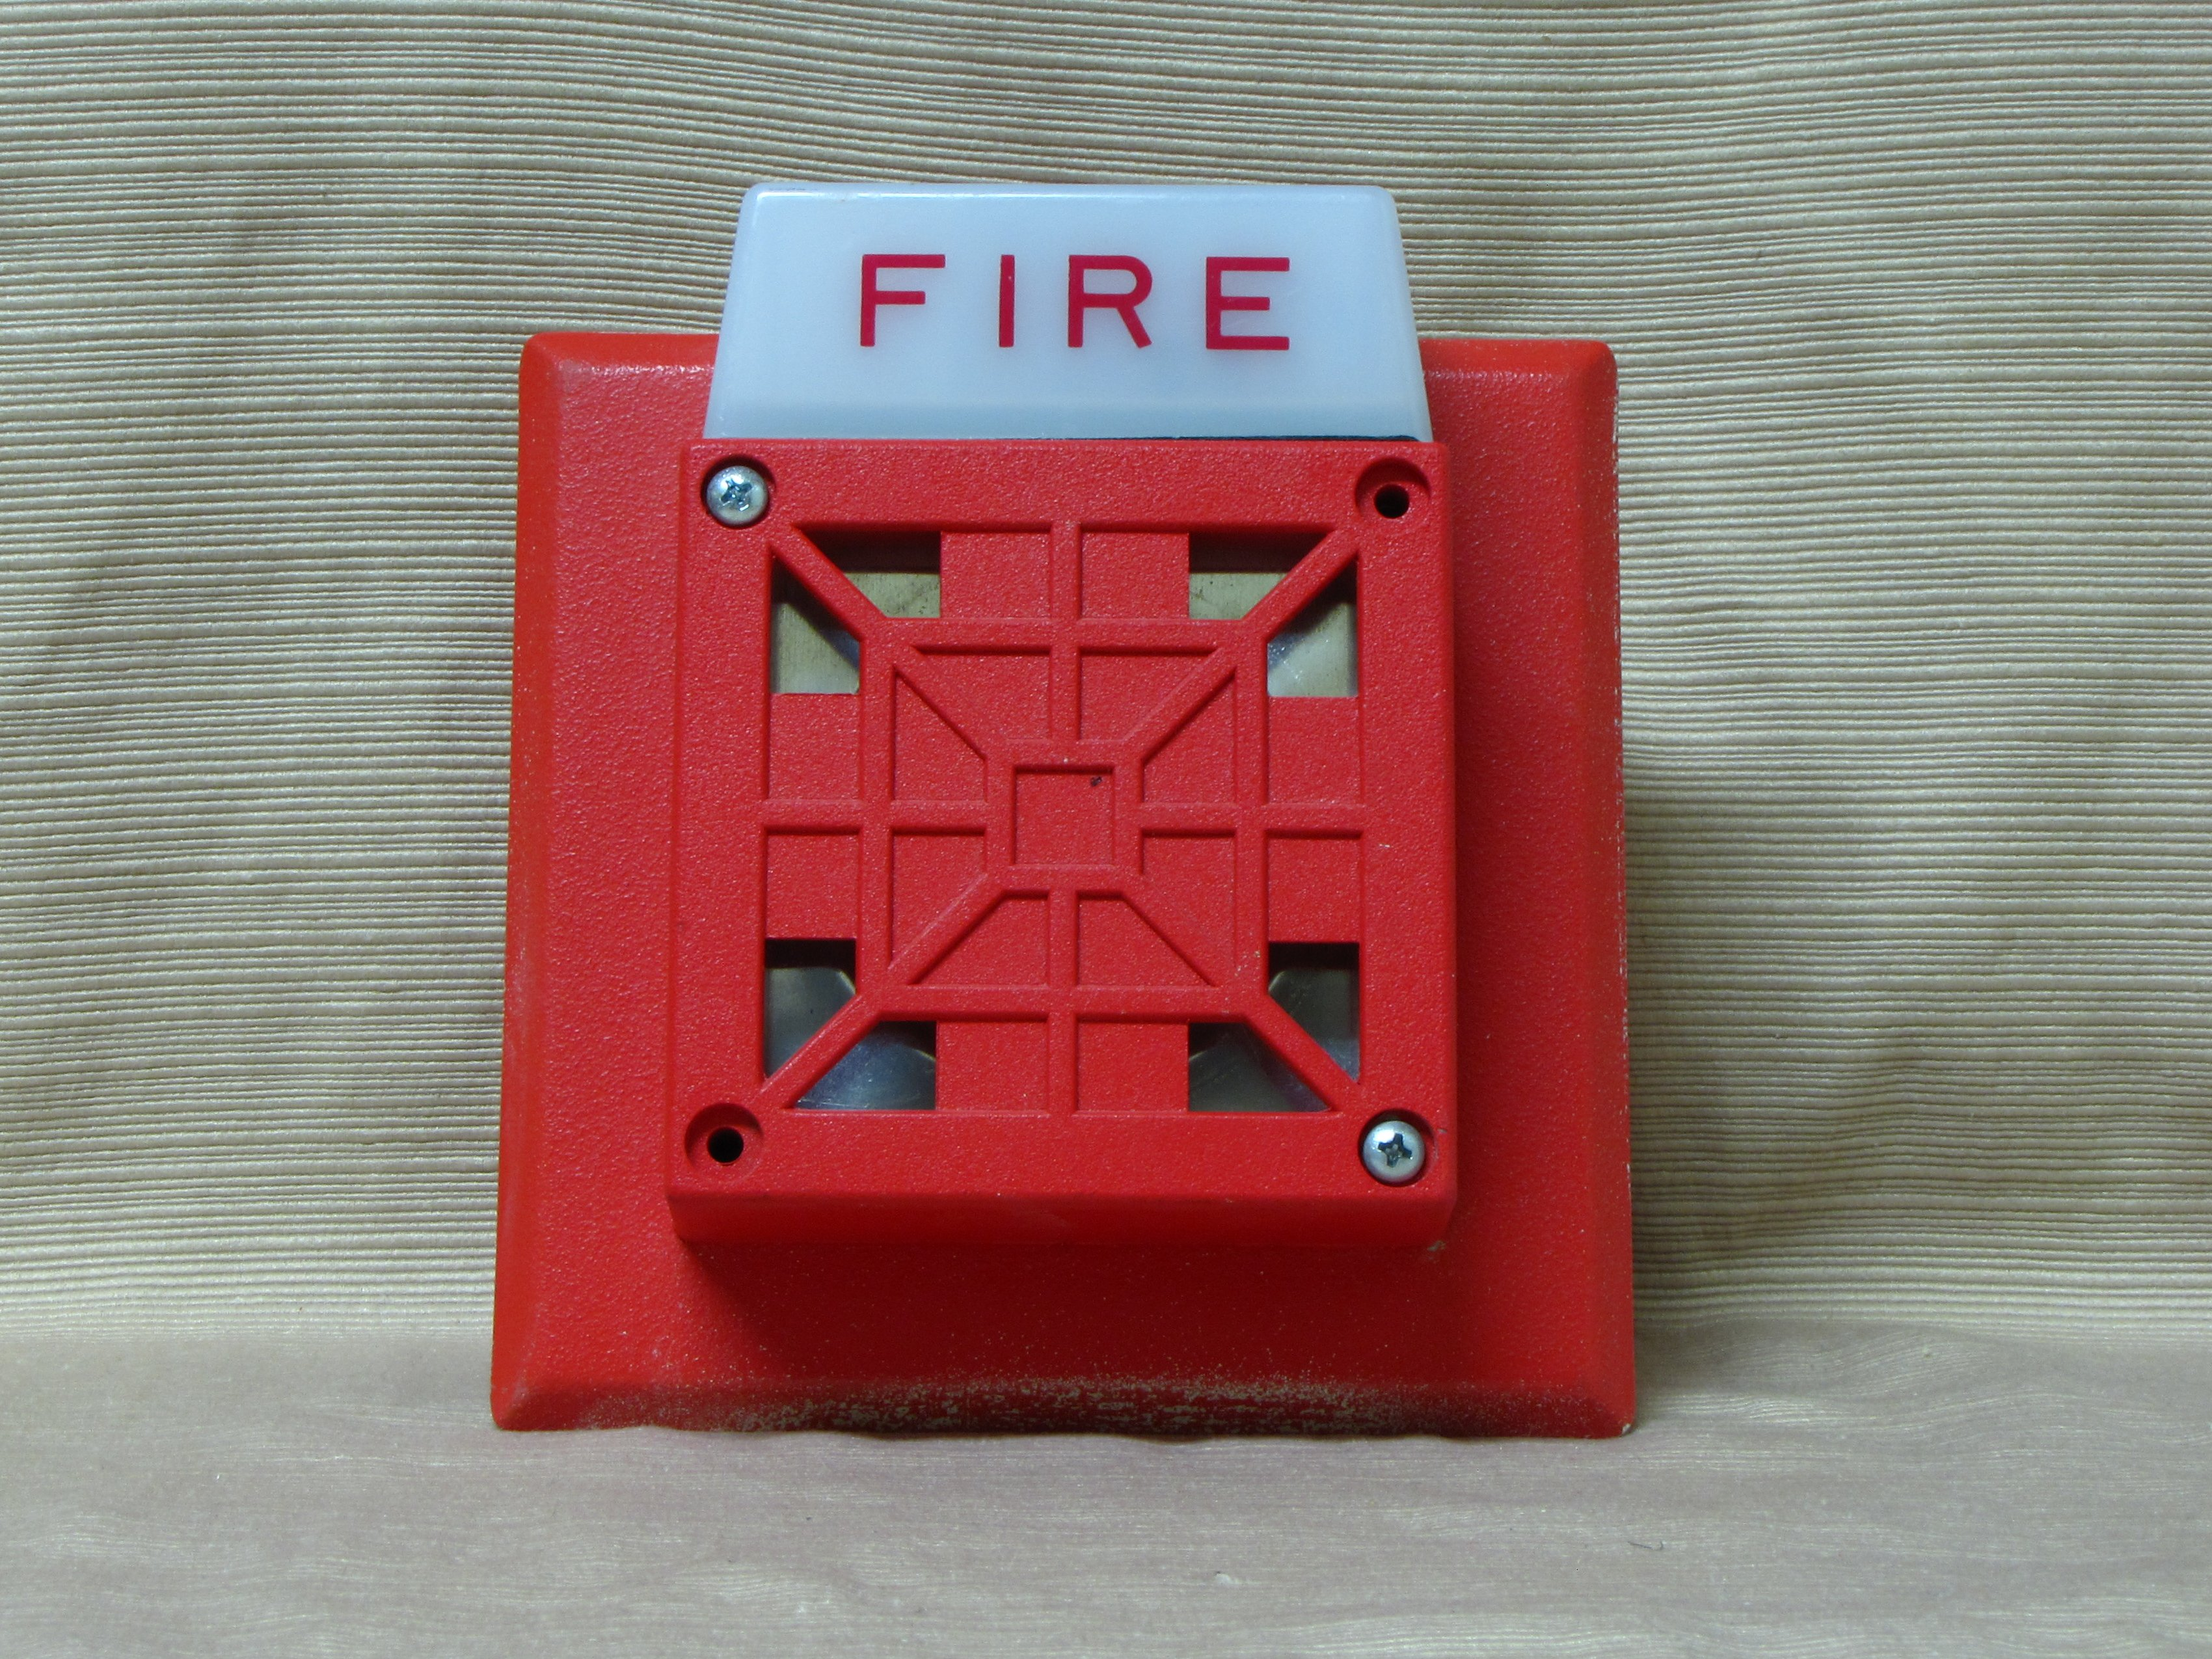 China Supply Carbon Dioxide Automatic Fire 60153989472 besides Texasfiredesign additionally sleepbox besides Home Appliances Control System further Alarm System Wiring. on fire alarm device